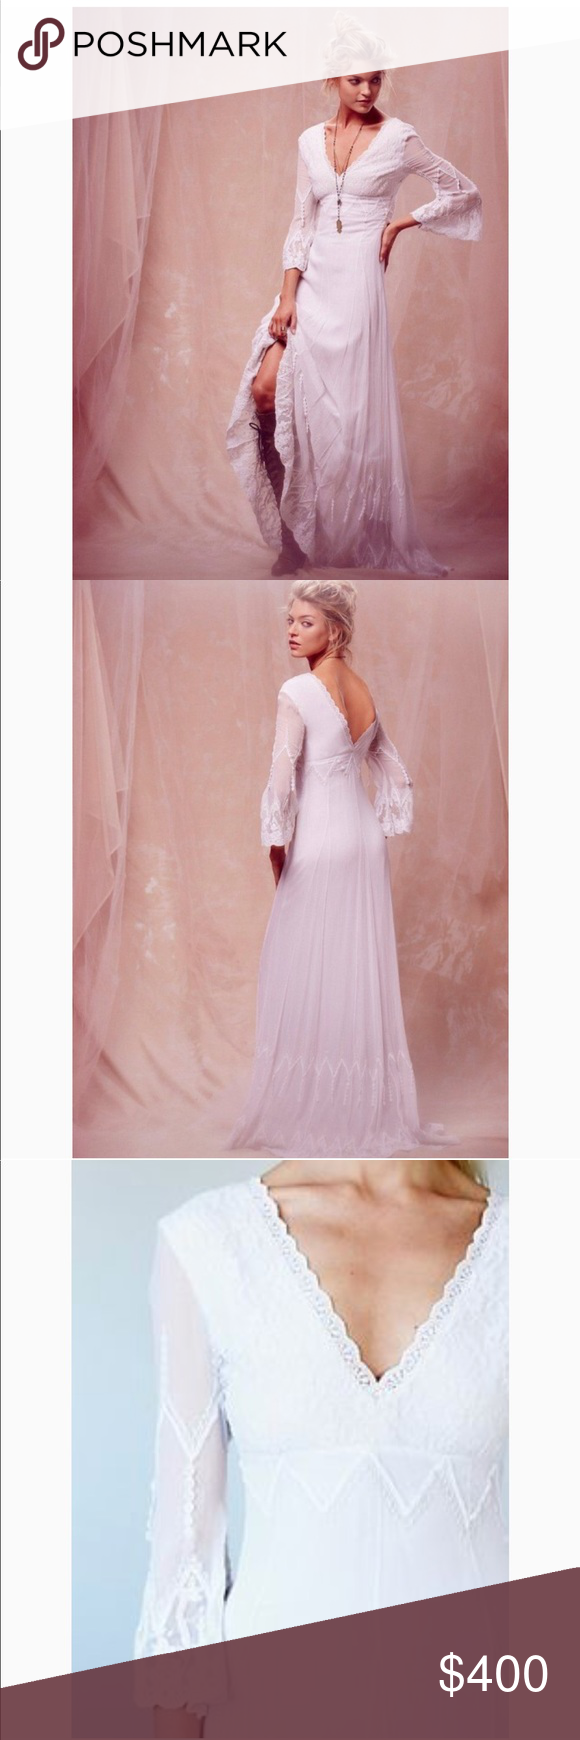 Free People Candela Mystic Gown